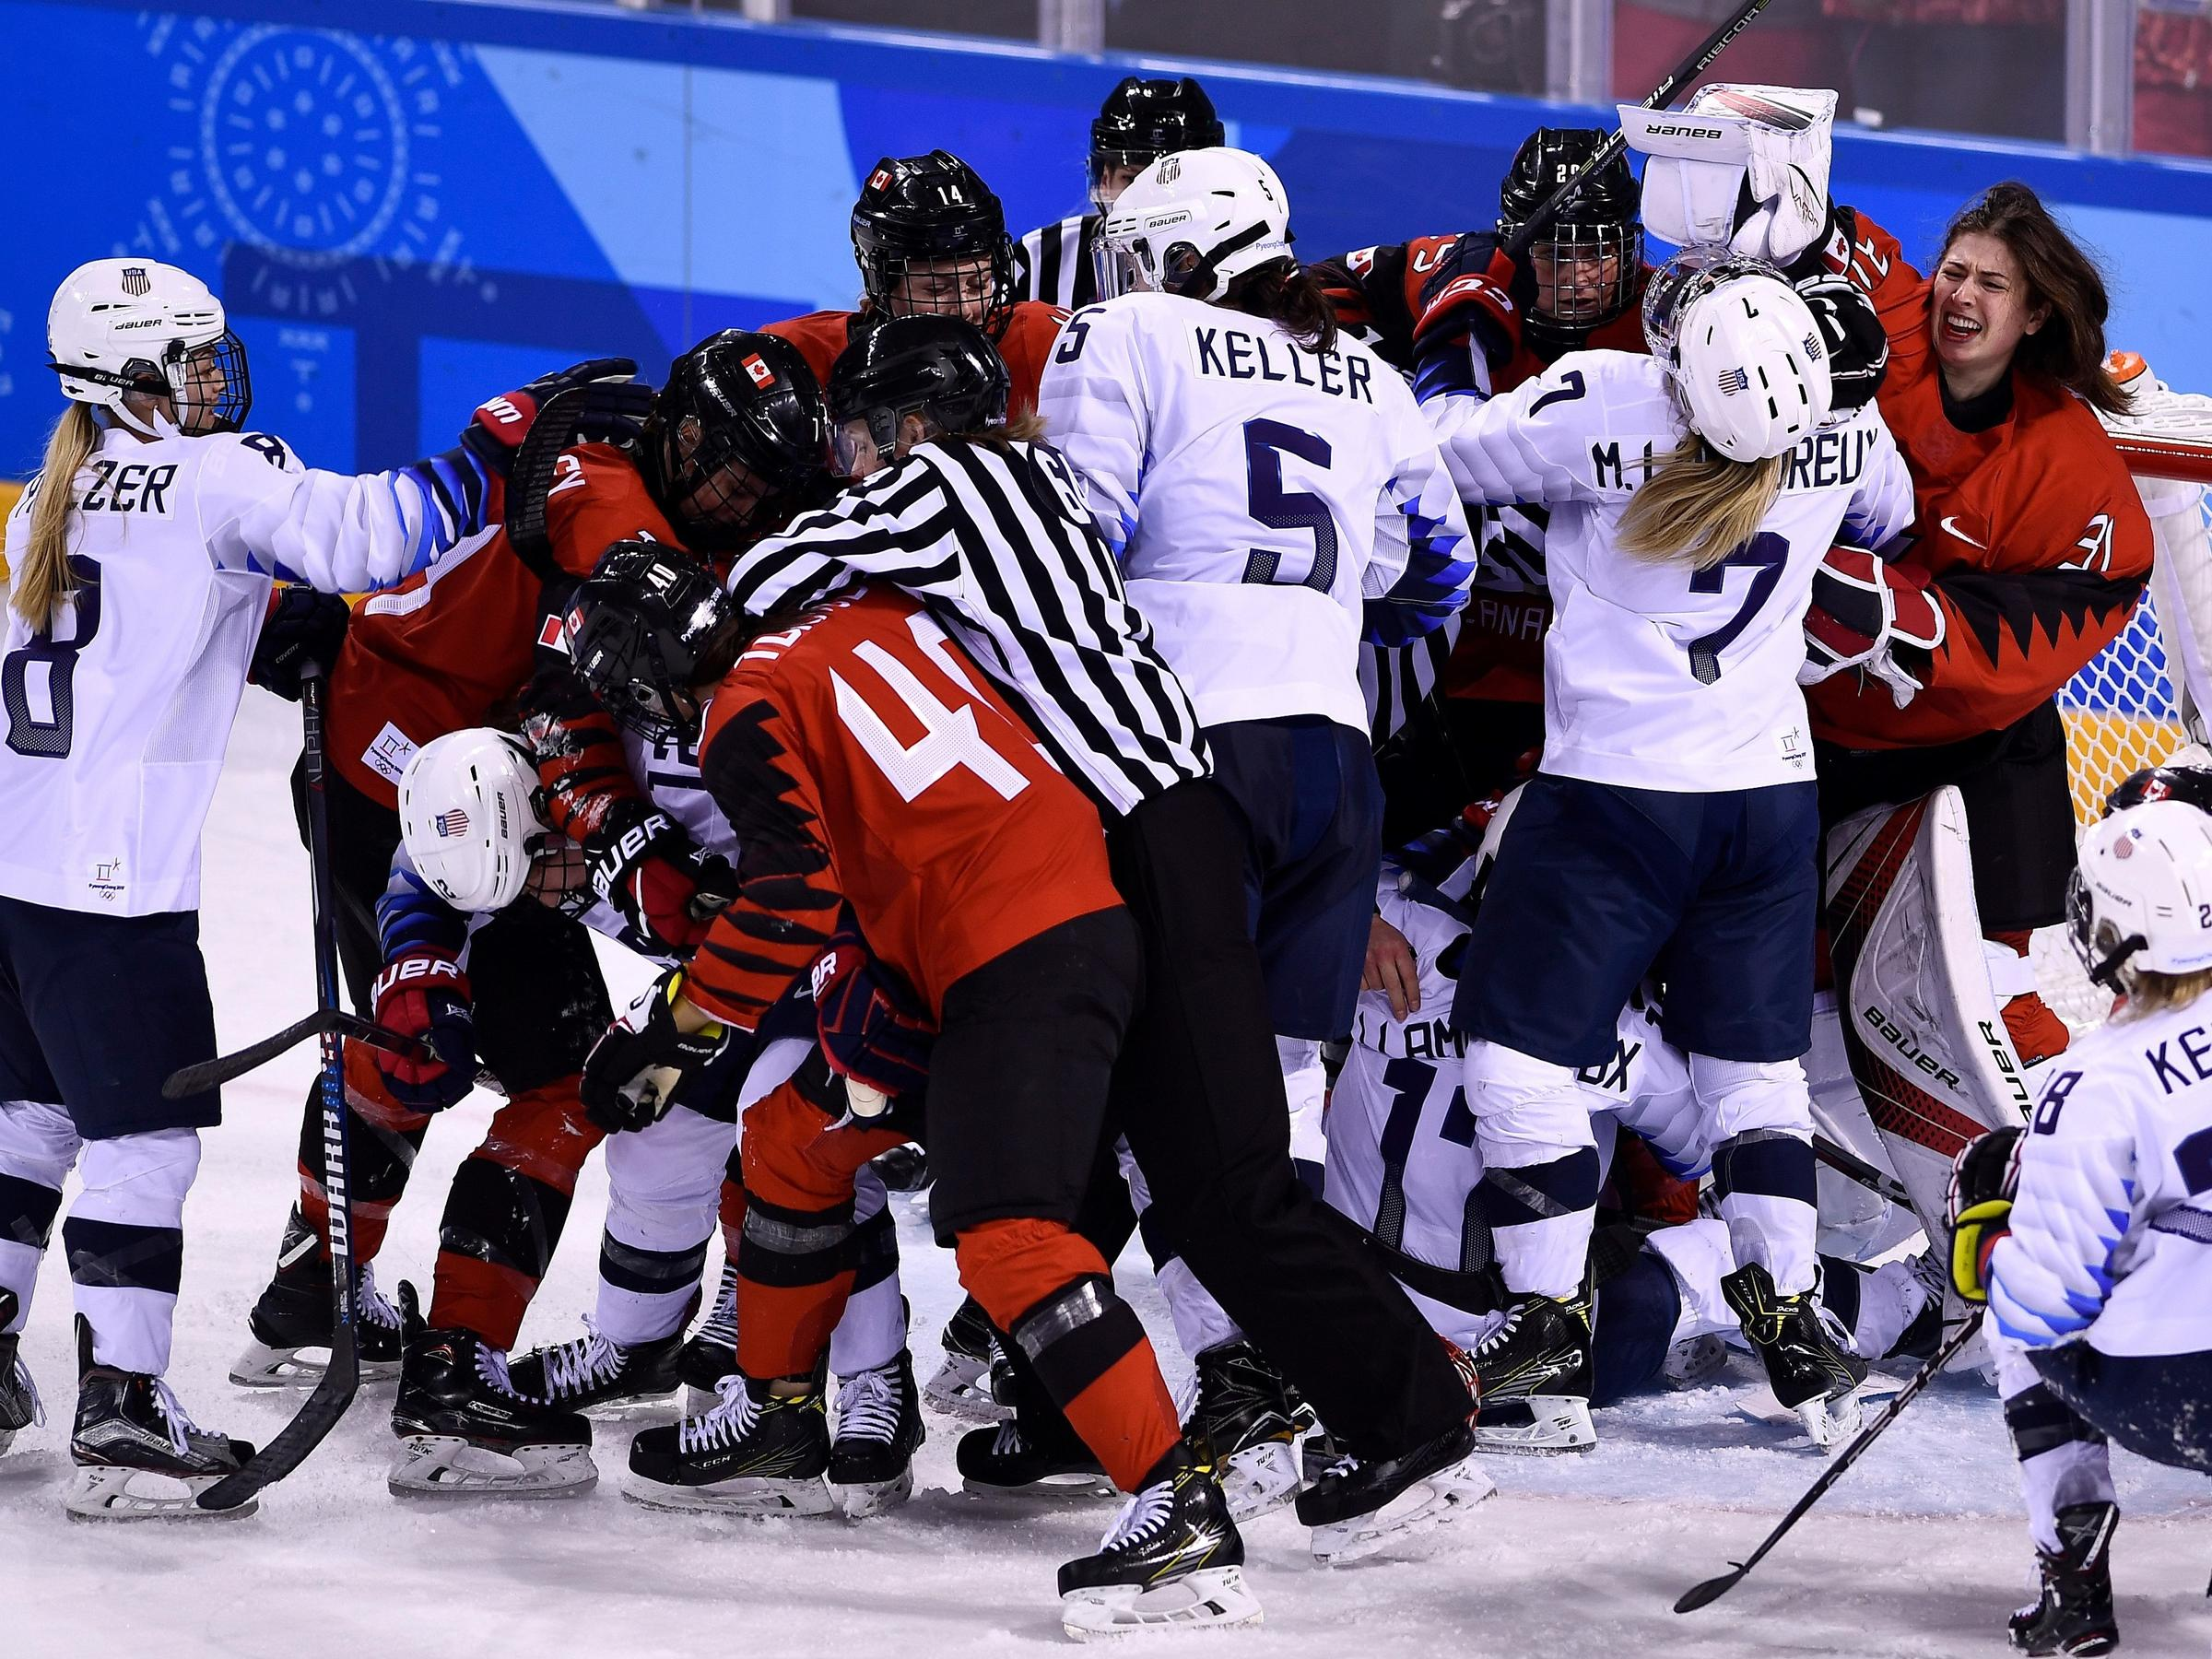 USA Beats Canada For Women's Hockey Gold